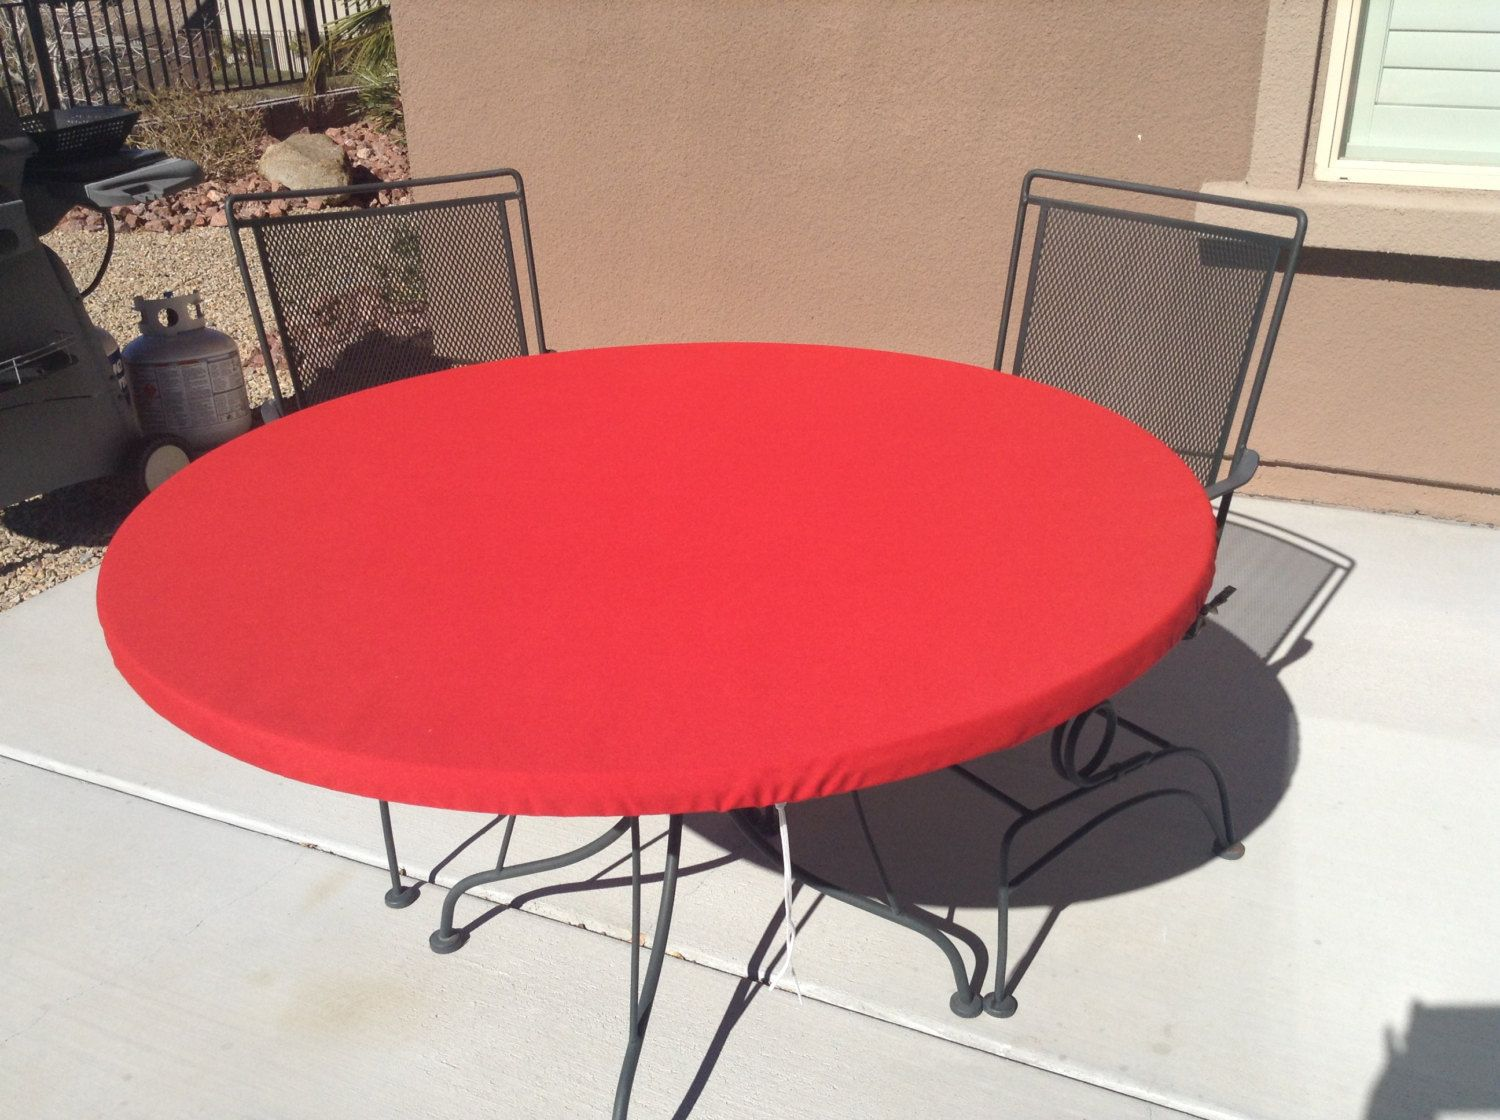 Round Outdoor Fitted Tablecloth Soil And Stain Resistant Etsy Table Cloth Outdoor Table Covers Fitted Tablecloths